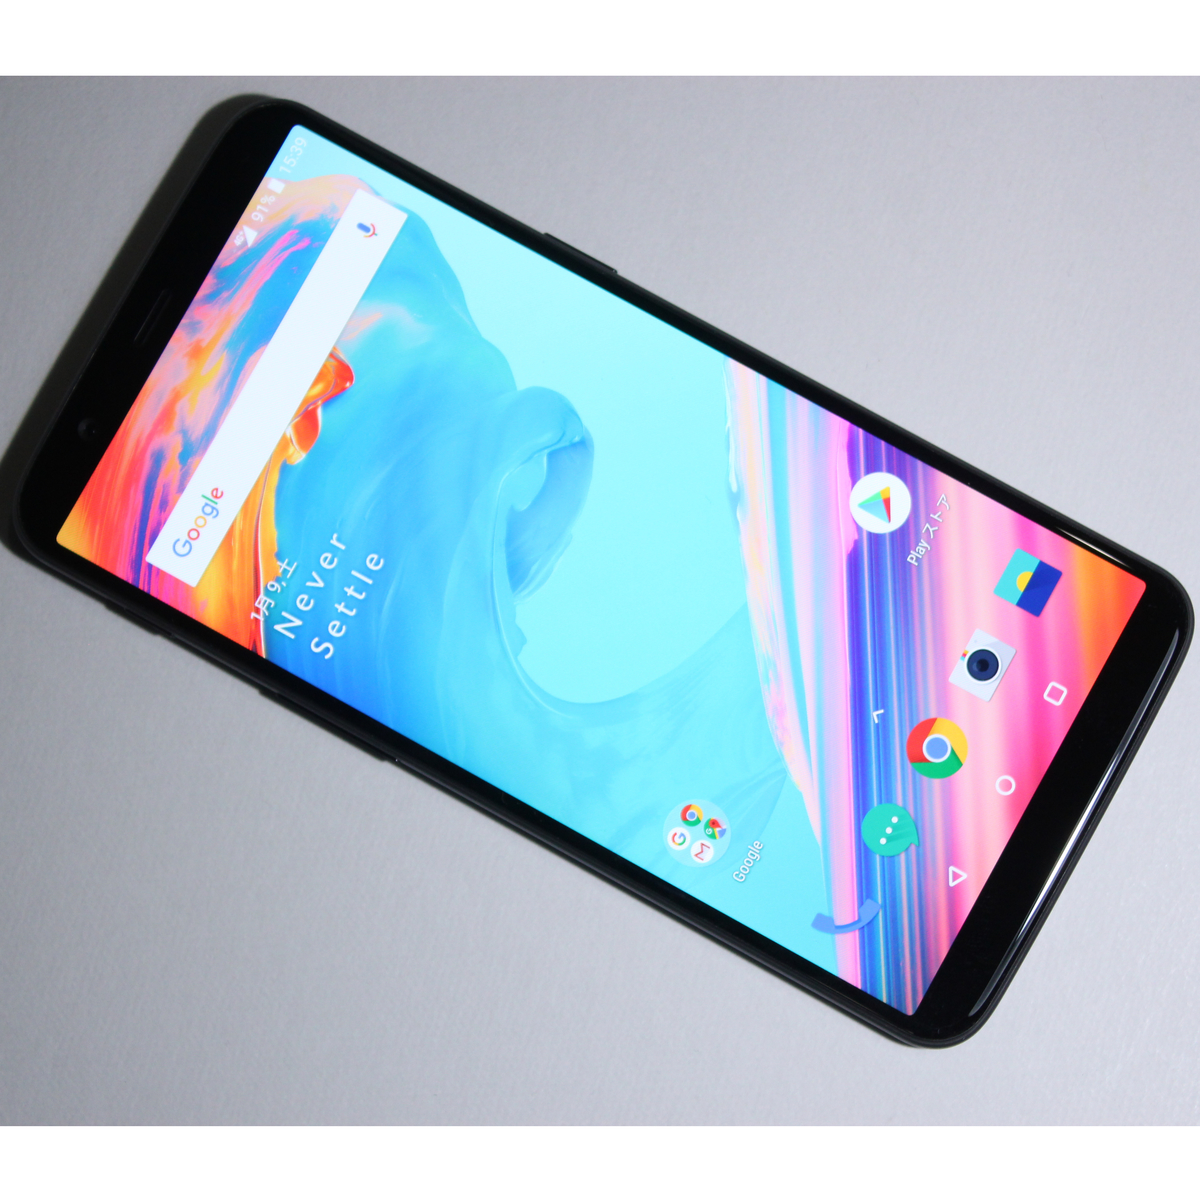 [ 8GB/128GB ] OnePlus 5T A5010 SIMフリー Android 8 アンドロイド Android8 アンドロイド8 /1_画像1